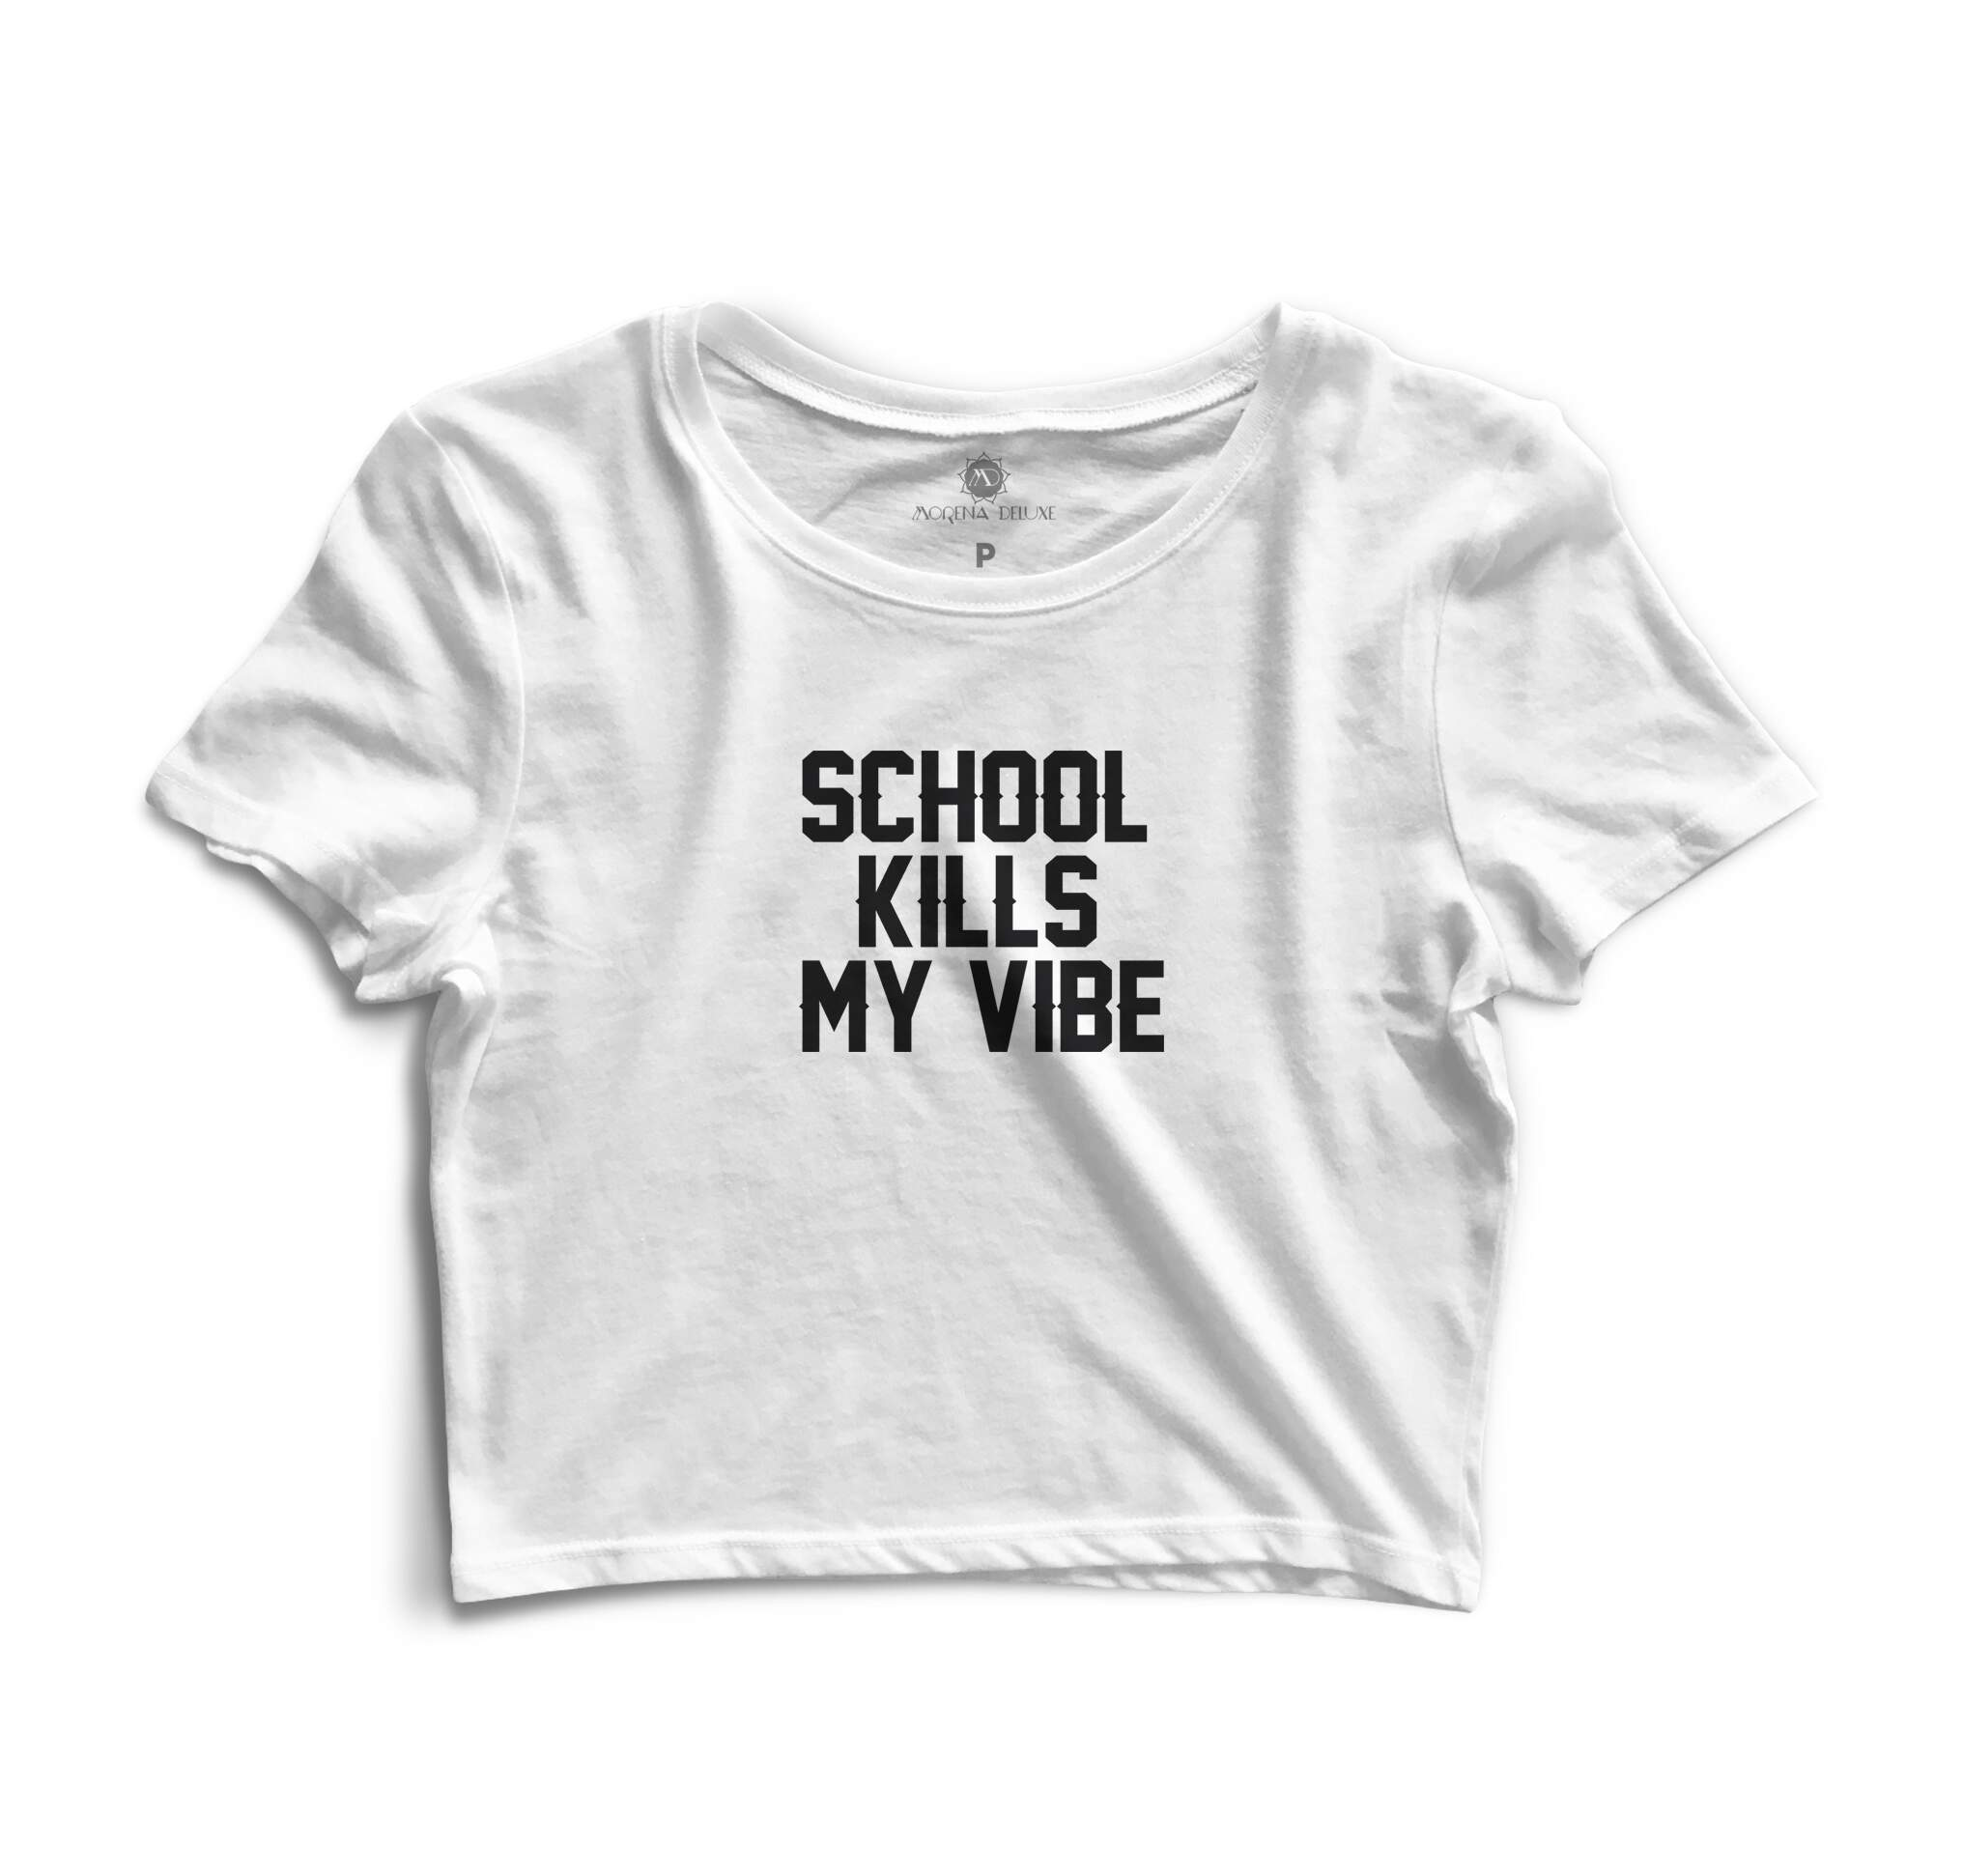 Blusa Cropped Morena Deluxe School Kills My Vibe Branco